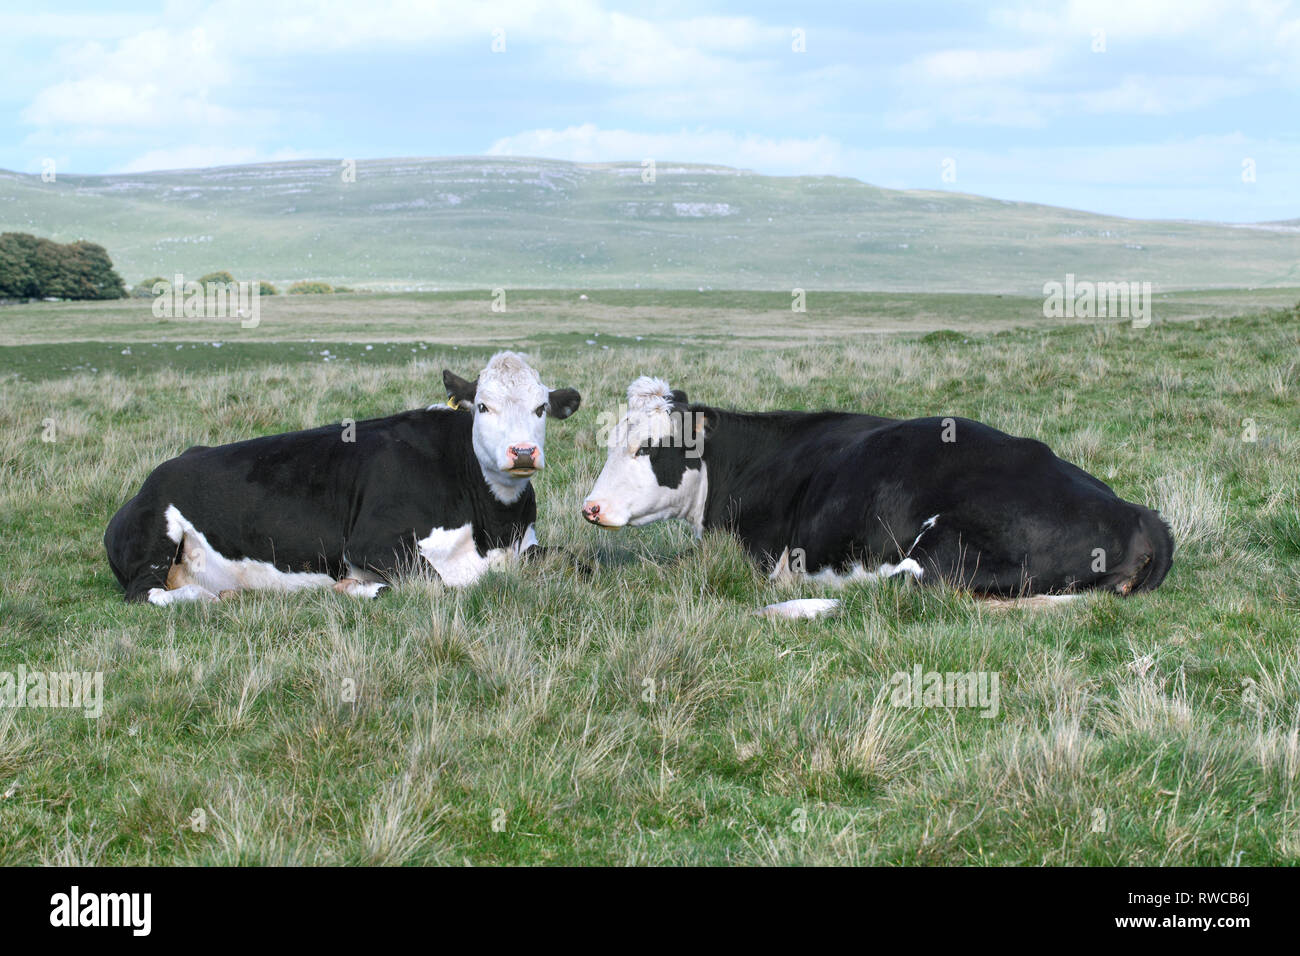 Cows on the moors near Malham Tarn in the Yorkshire Dales. Great Close Scar in the background. - Stock Image